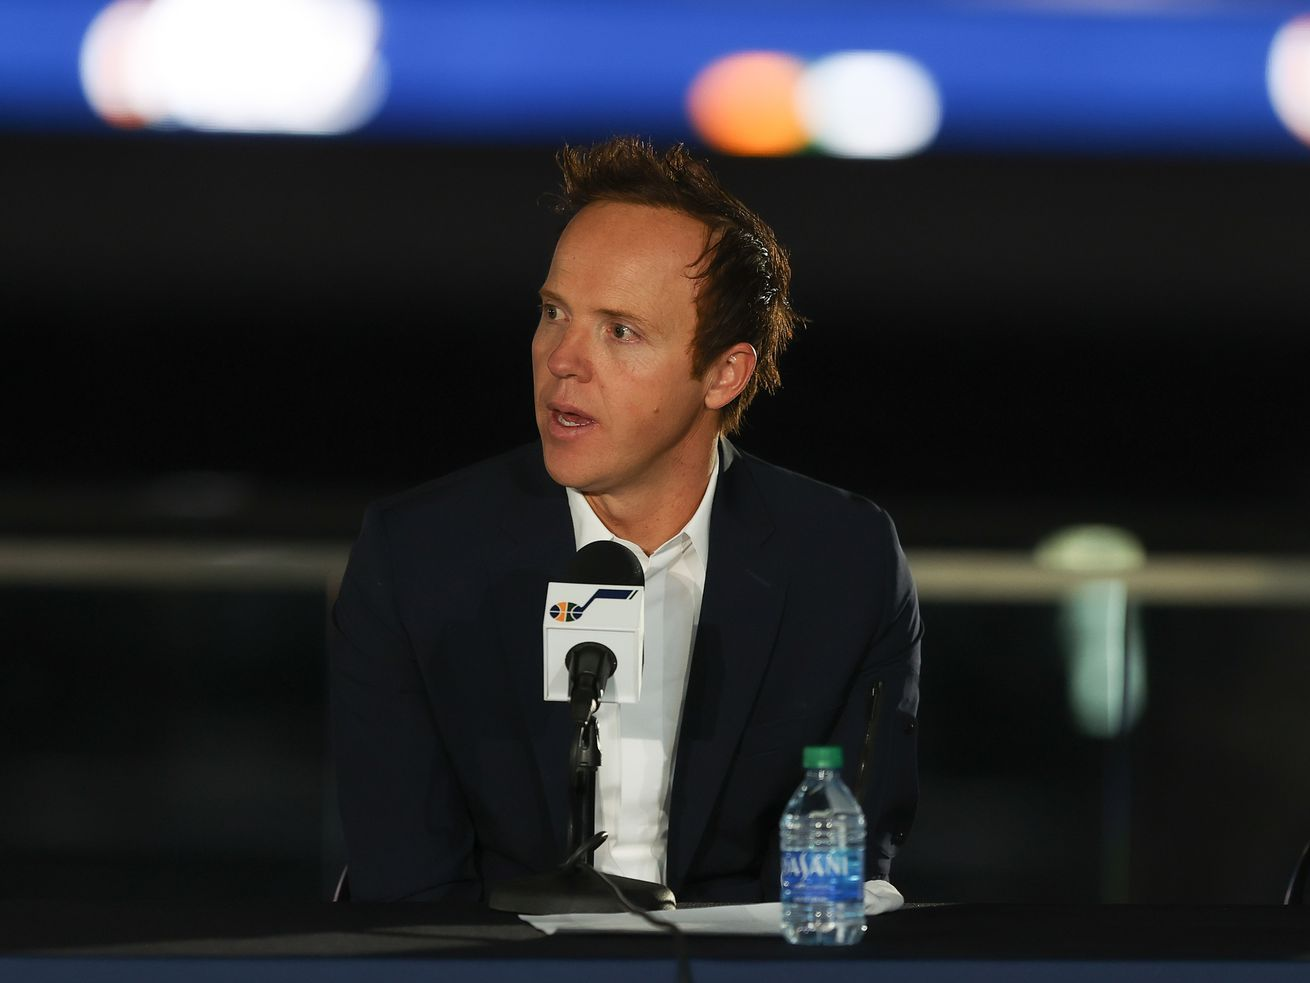 Ryan Smith, CEO of Qualtrics, speaks at a press conference announcing Smith's purchase of the Utah Jazz from Gail Miller.